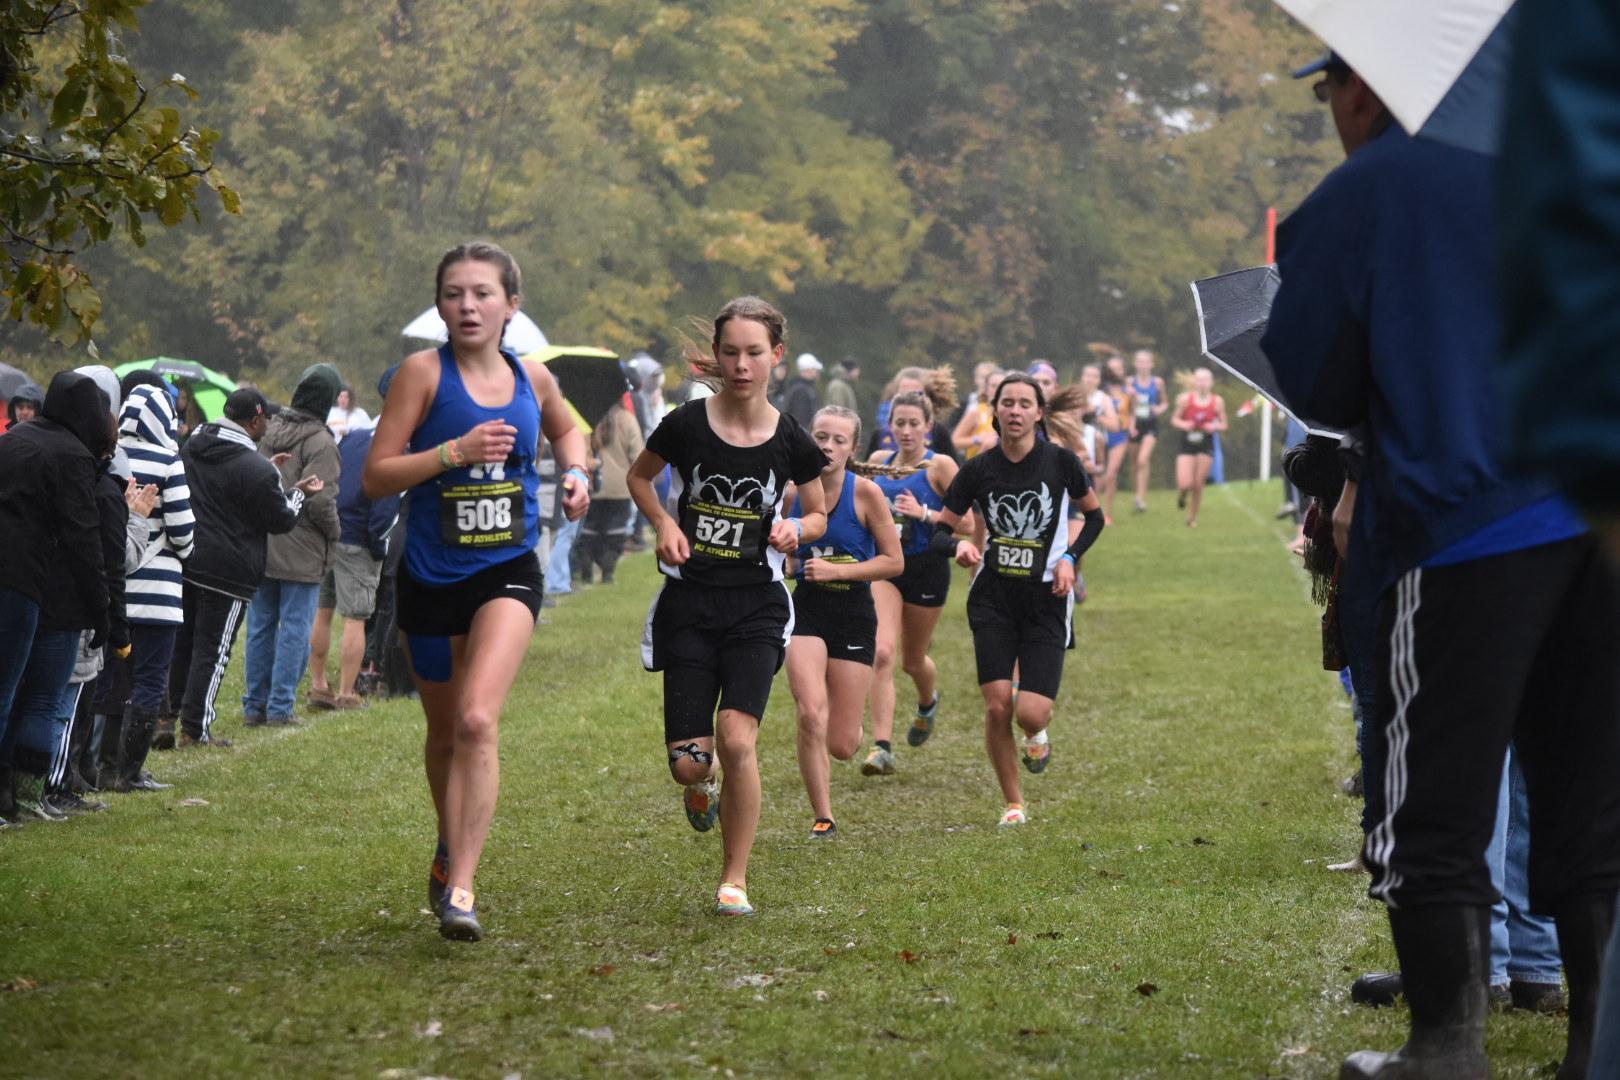 OHSAA Girls Cross Country Meet Postponed